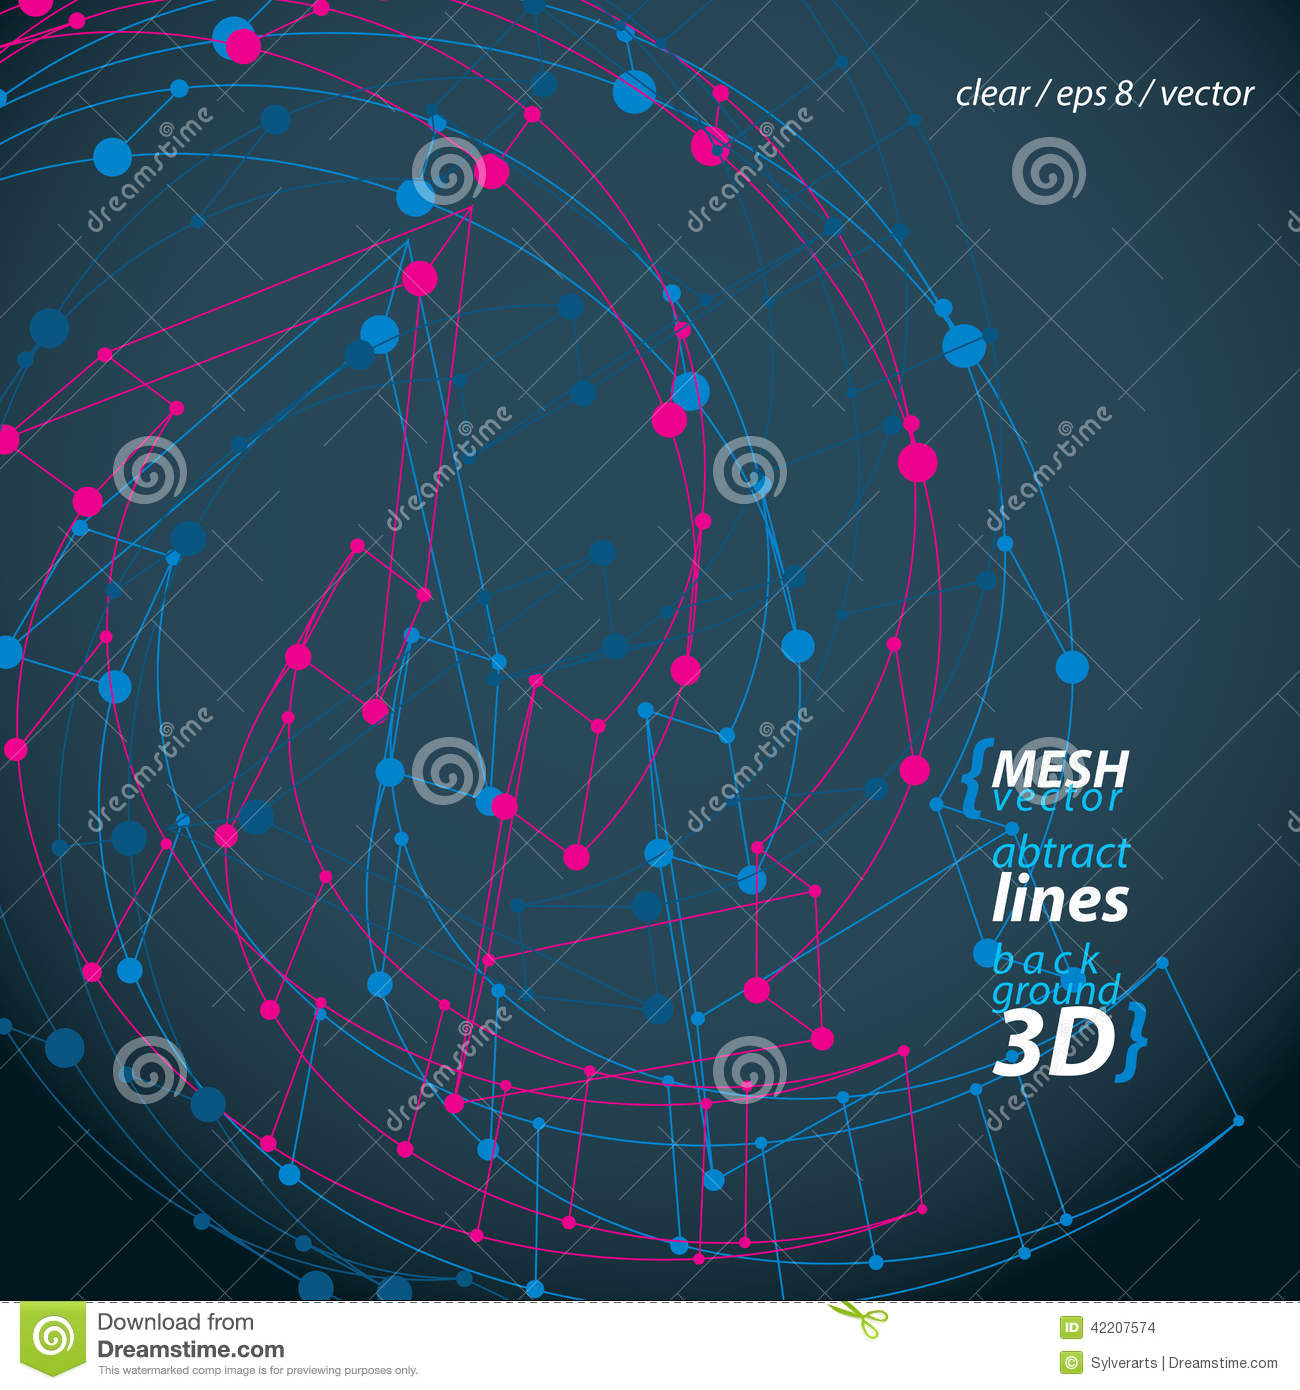 Clear eps 8 engineering vector illustration, 3d mesh symbol, wireframe loop sign isolated on dark background.